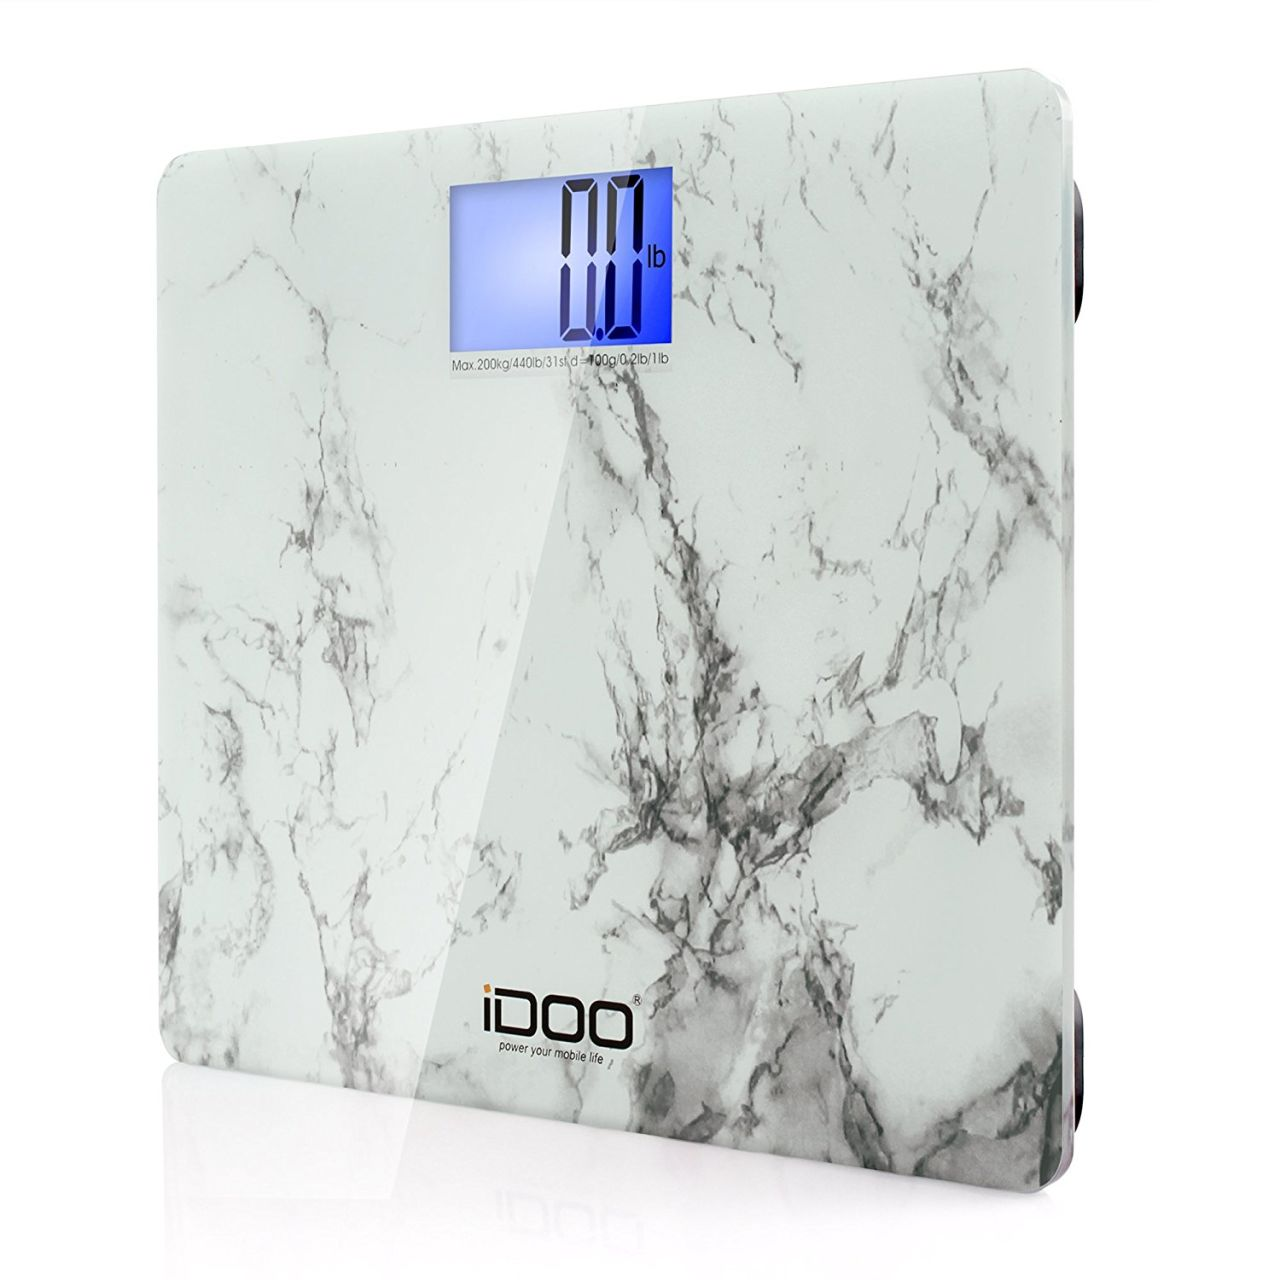 Bathroom scales best rated - 14 Best Digital Bathroom Scales 2017 Reviews Of Electronic Weight Scales